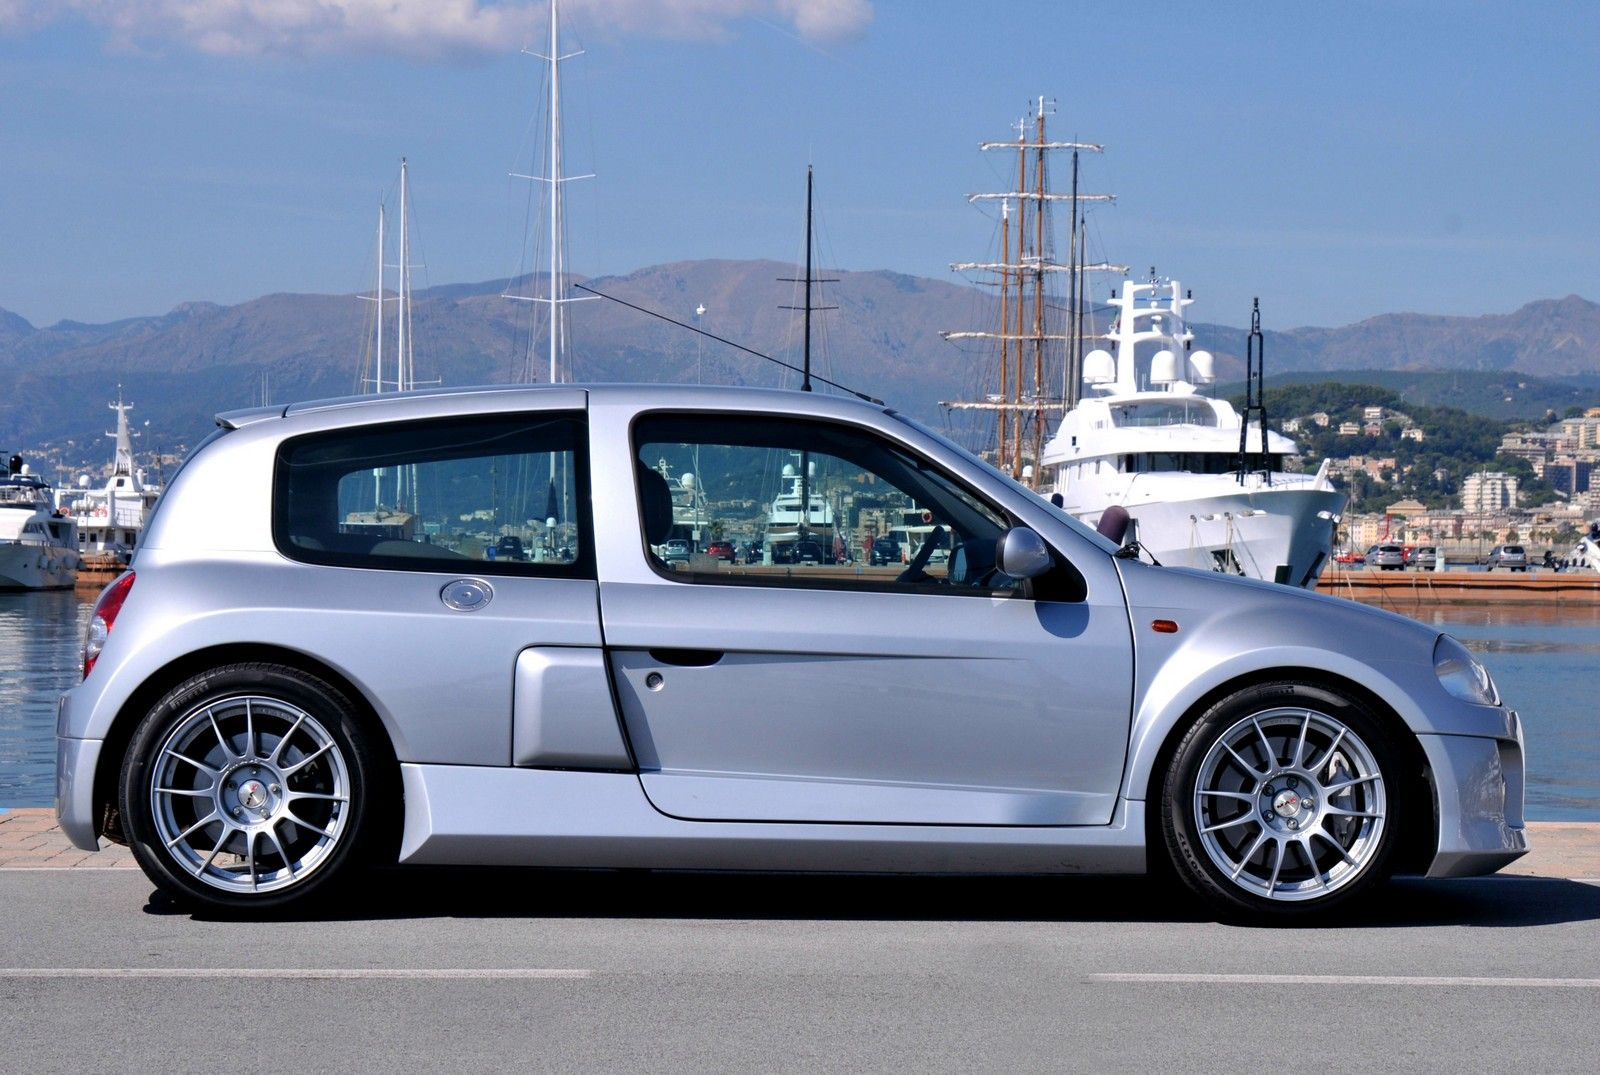 Renault Clio 3 0 V6 Sport Cars And Bikes Pinterest Cars